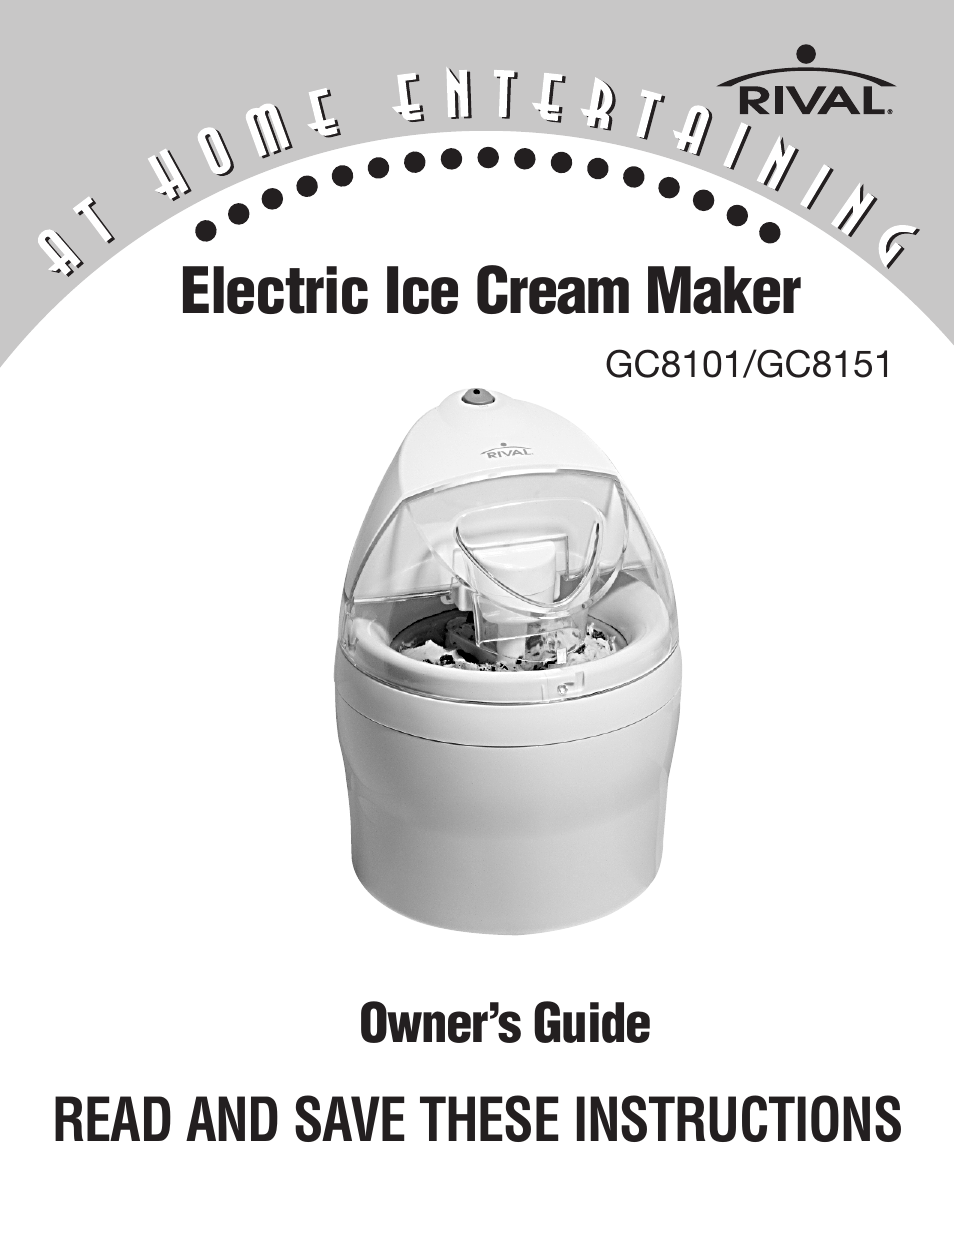 rival gc8151 user manual 20 pages also for gc8101 rh manualsdir com rival ice cream maker manual model 8401 rival ice cream maker manual 8550 x